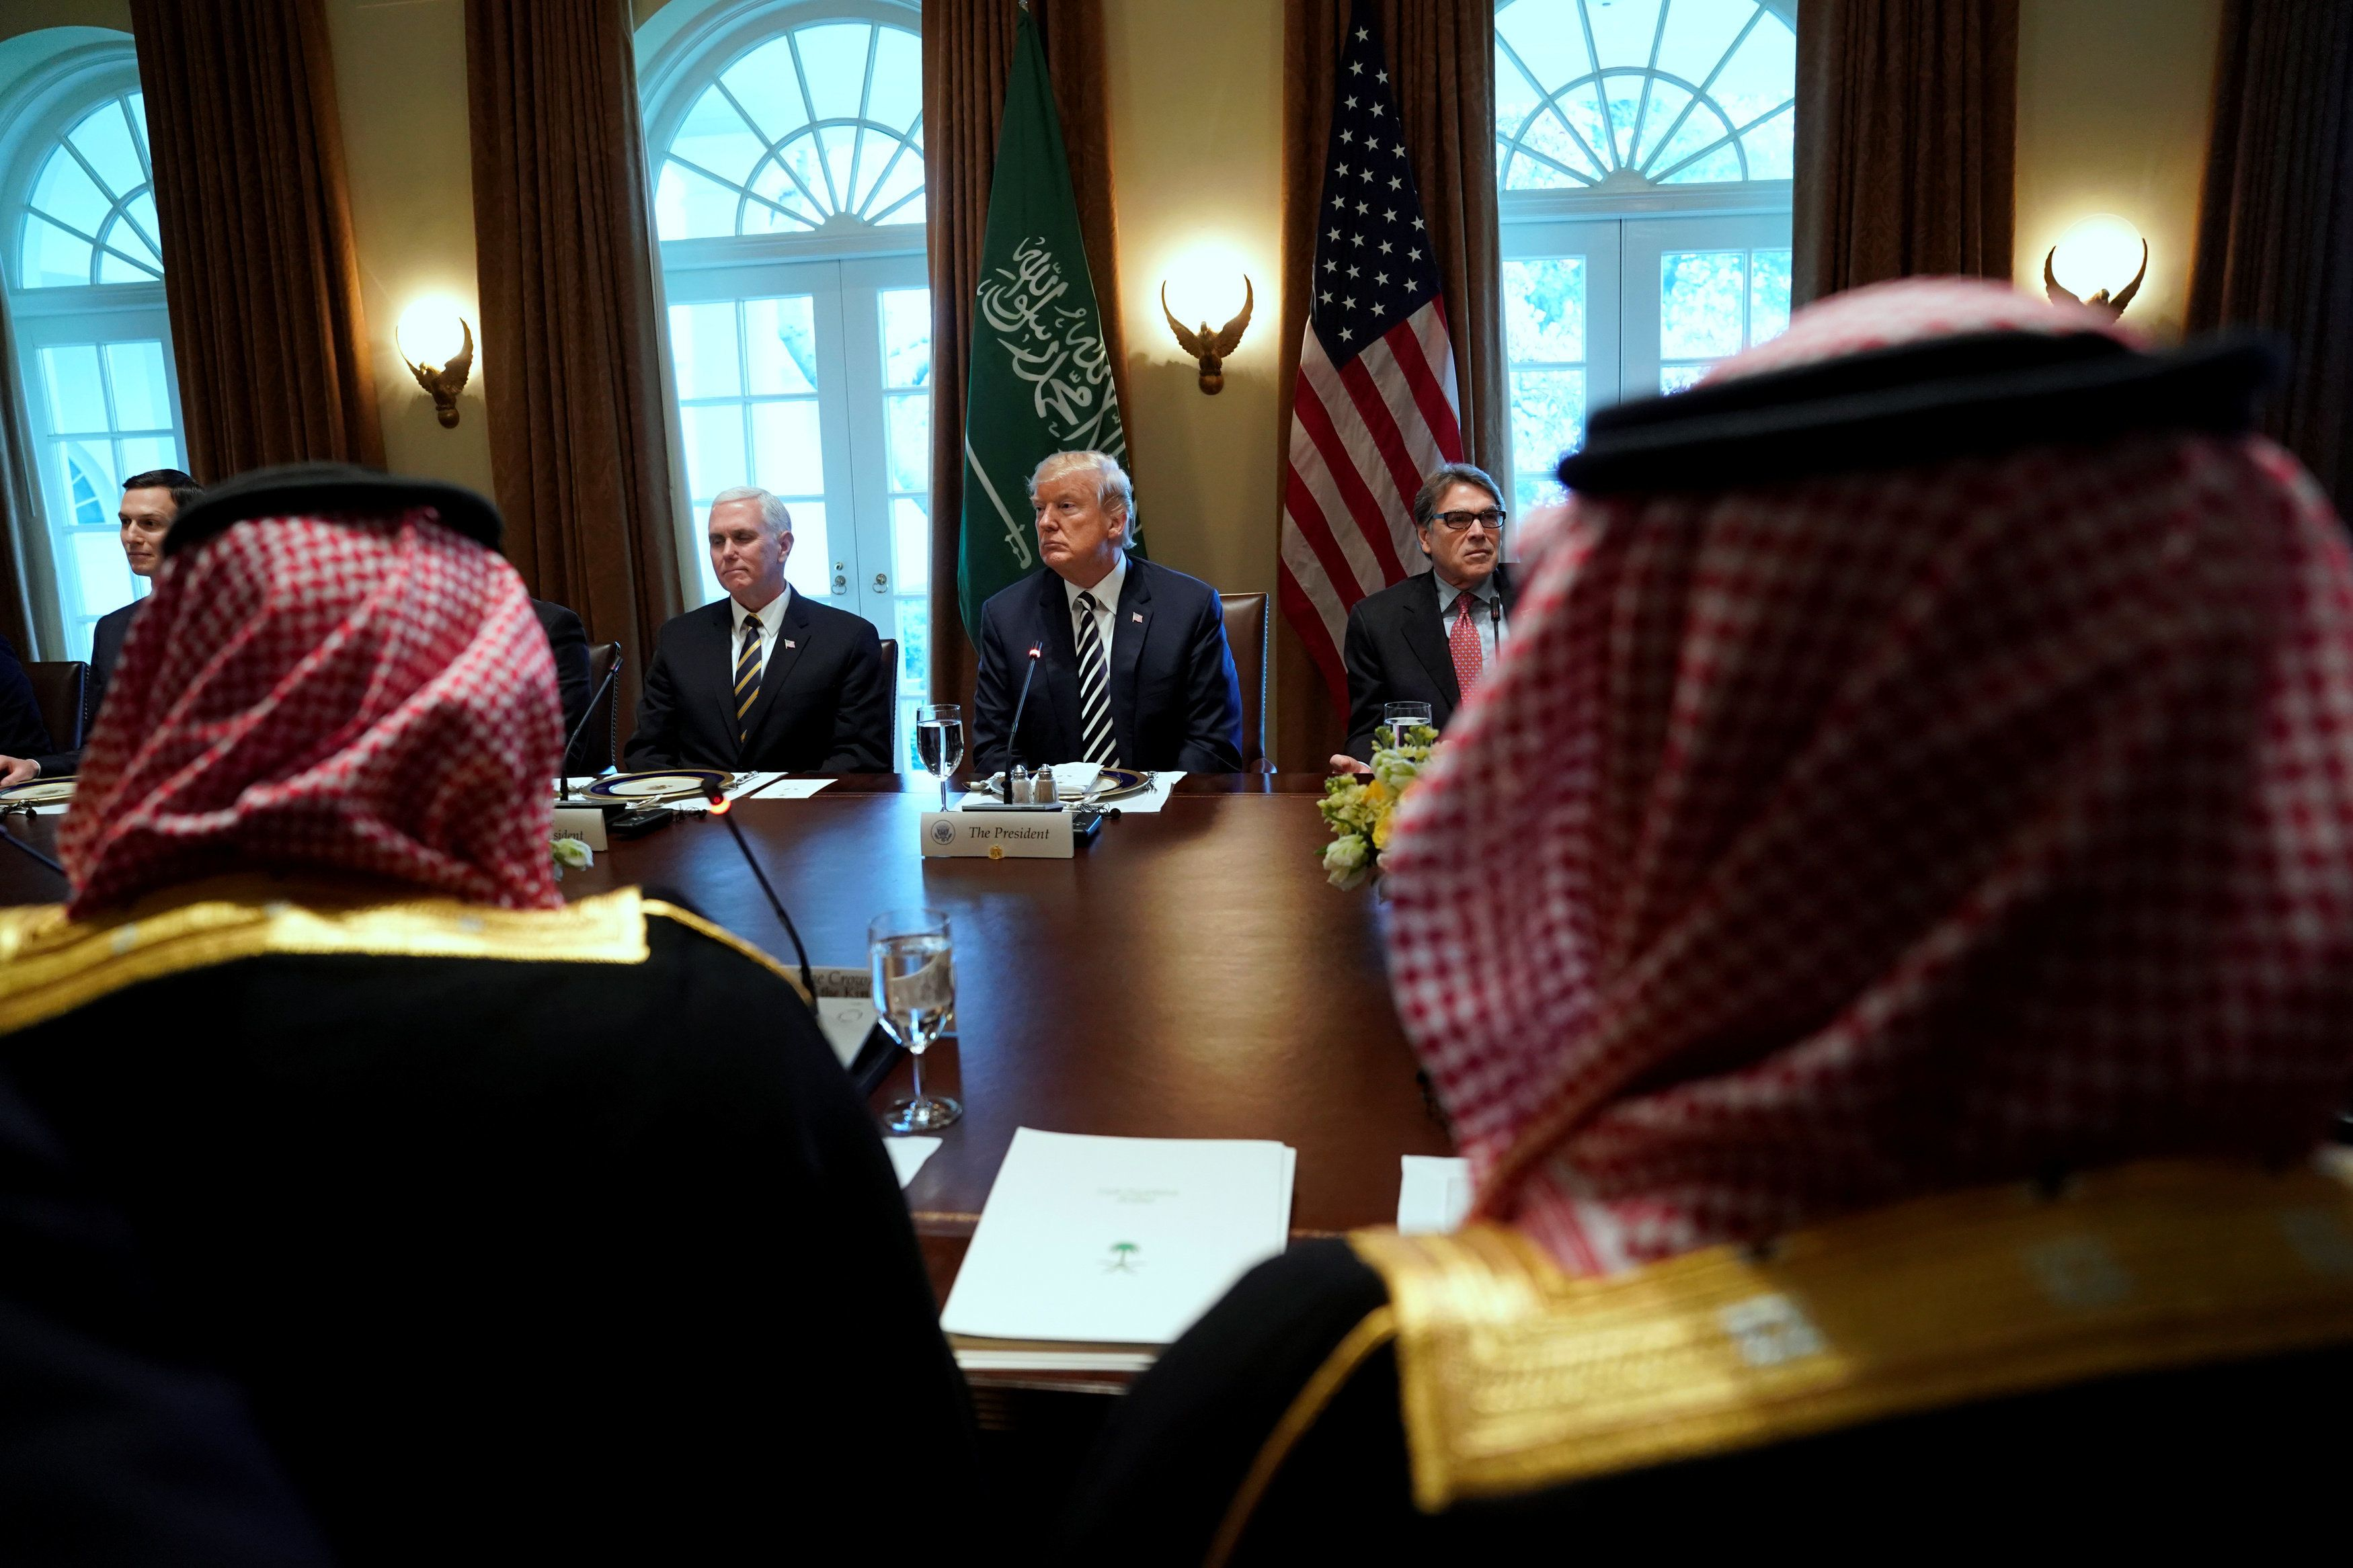 Trump Administration To Approve $1 Billion Arms Sale To Saudi